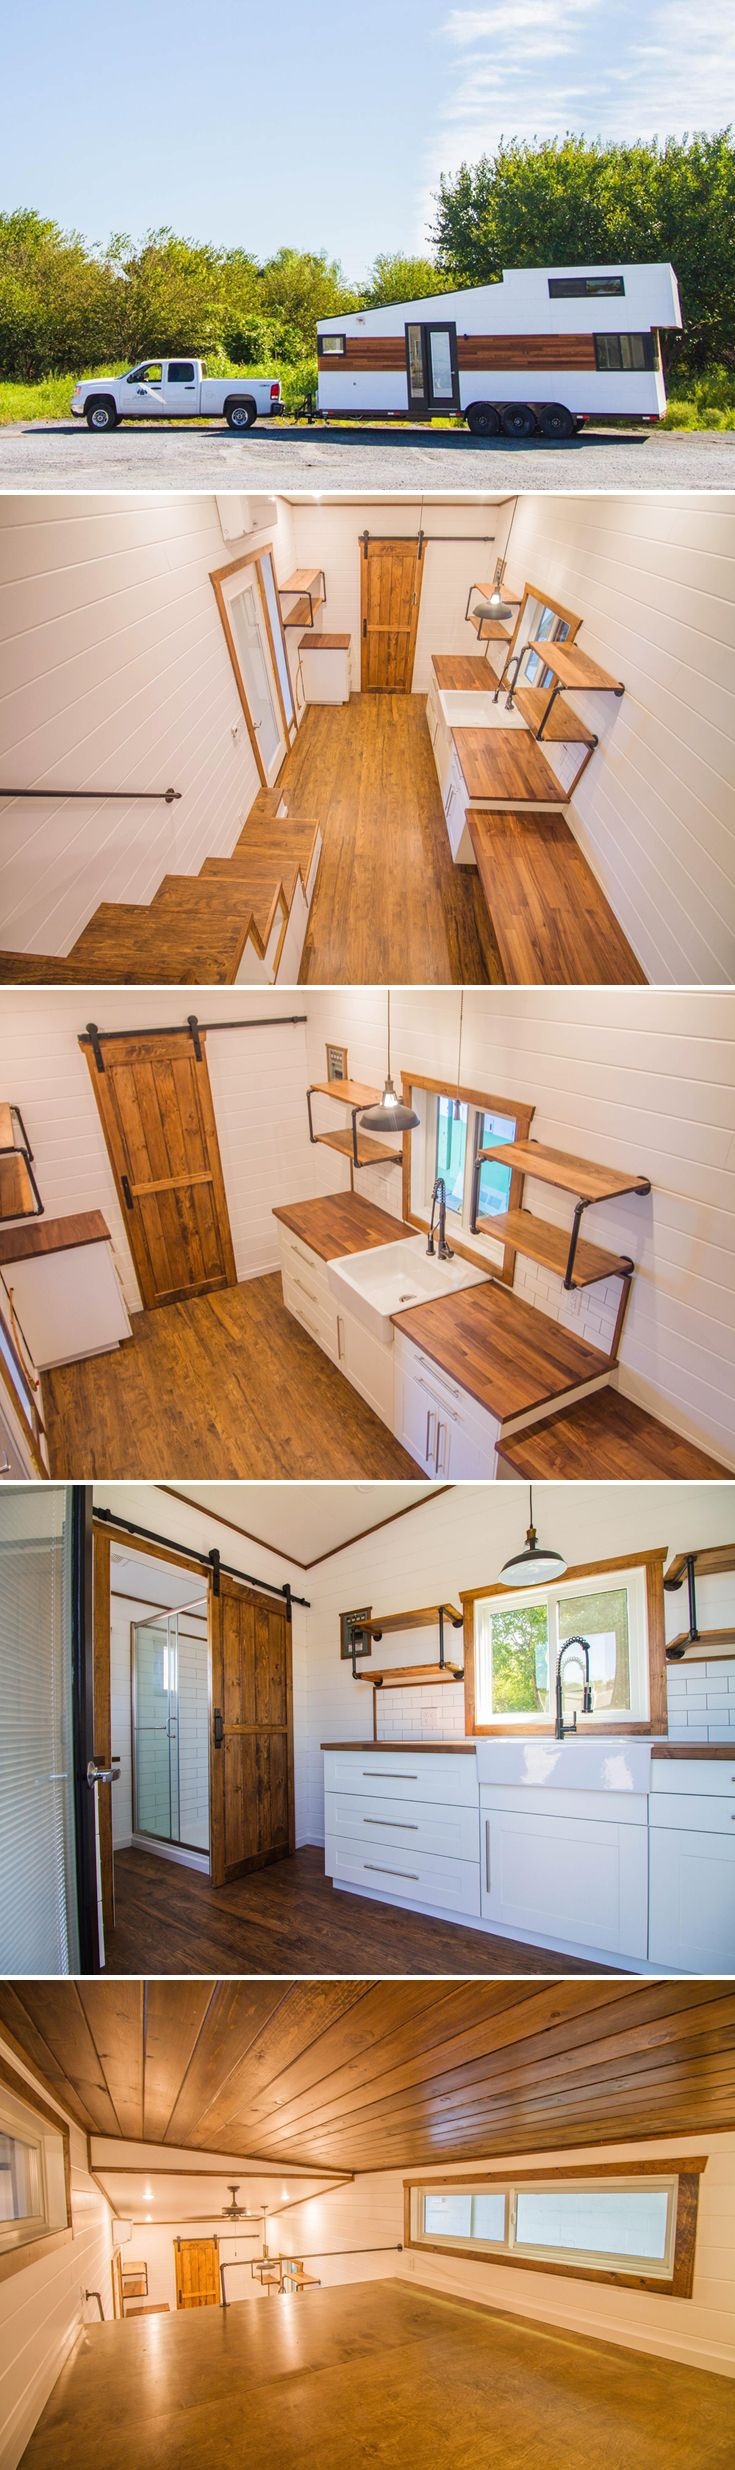 Liberation Tiny Homes combined their Alpha and Modern Farmhouse models to create the 28-foot White Modern Farmhouse with cedar accents.